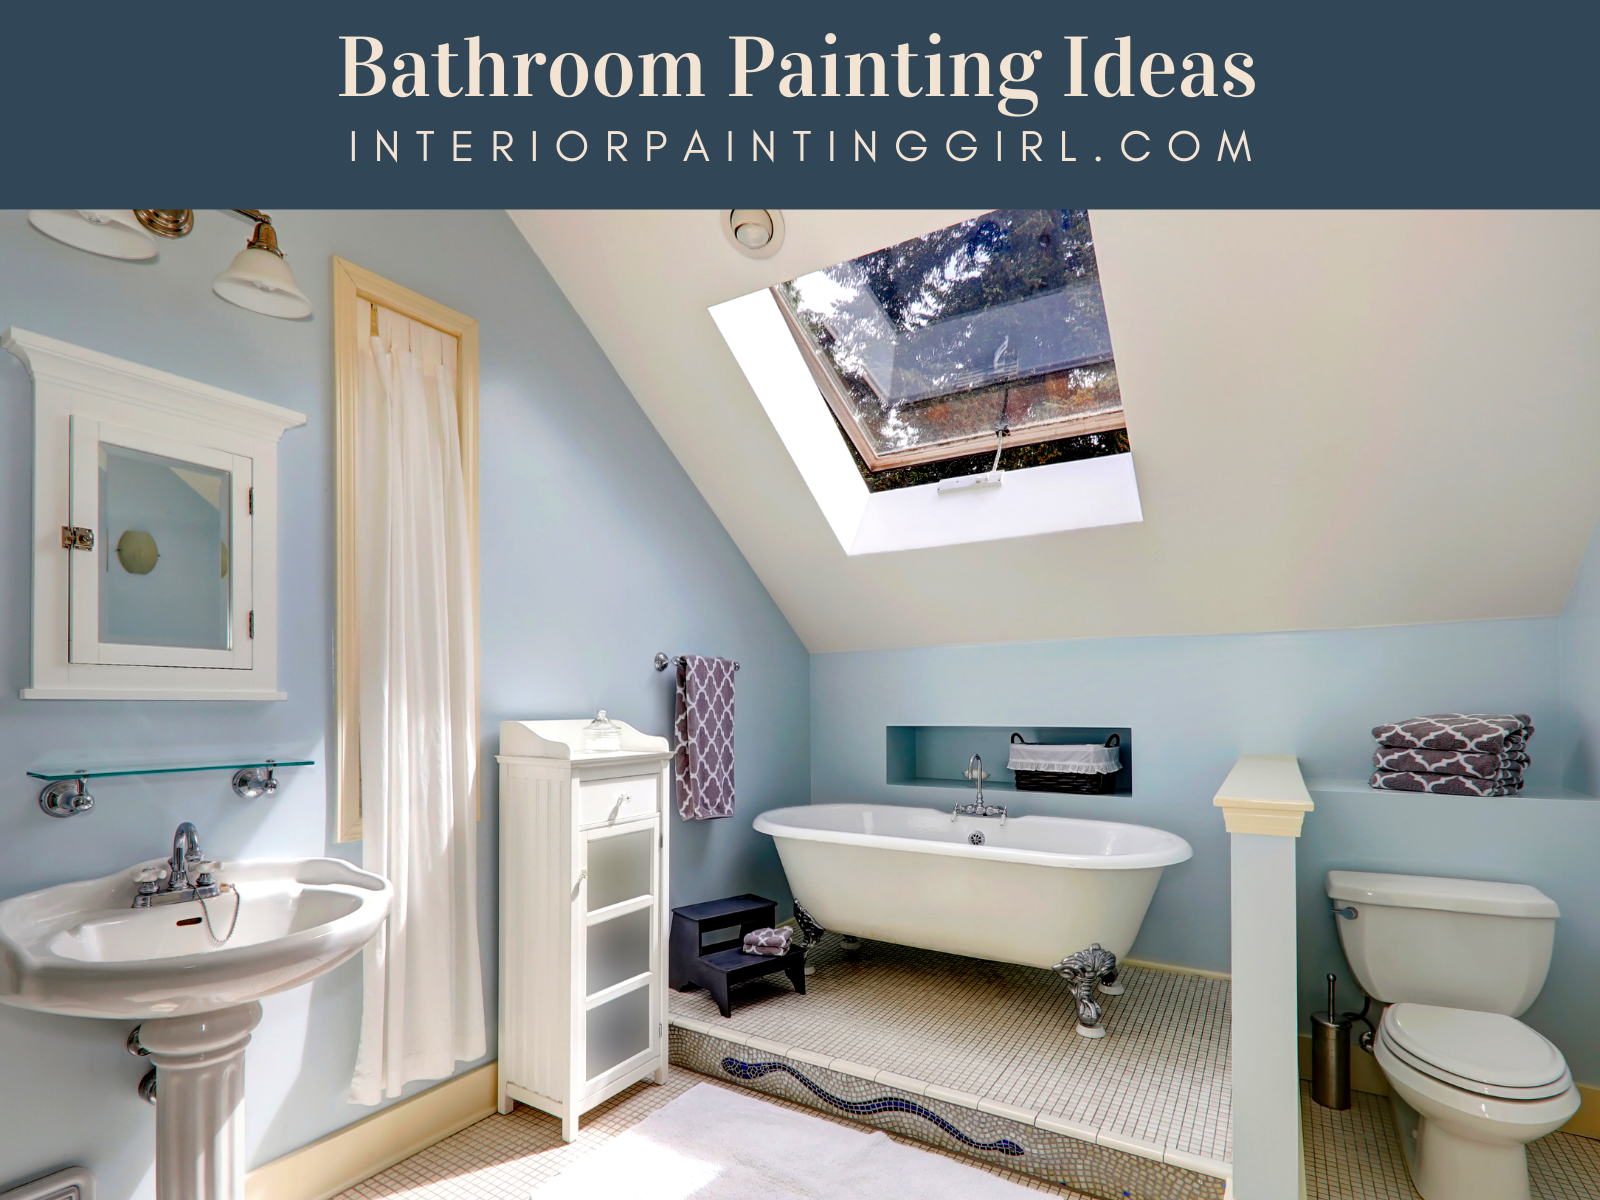 Bathroom Painting Ideas - Sandy & Nautical Themes - THAT Interior Painting Girl